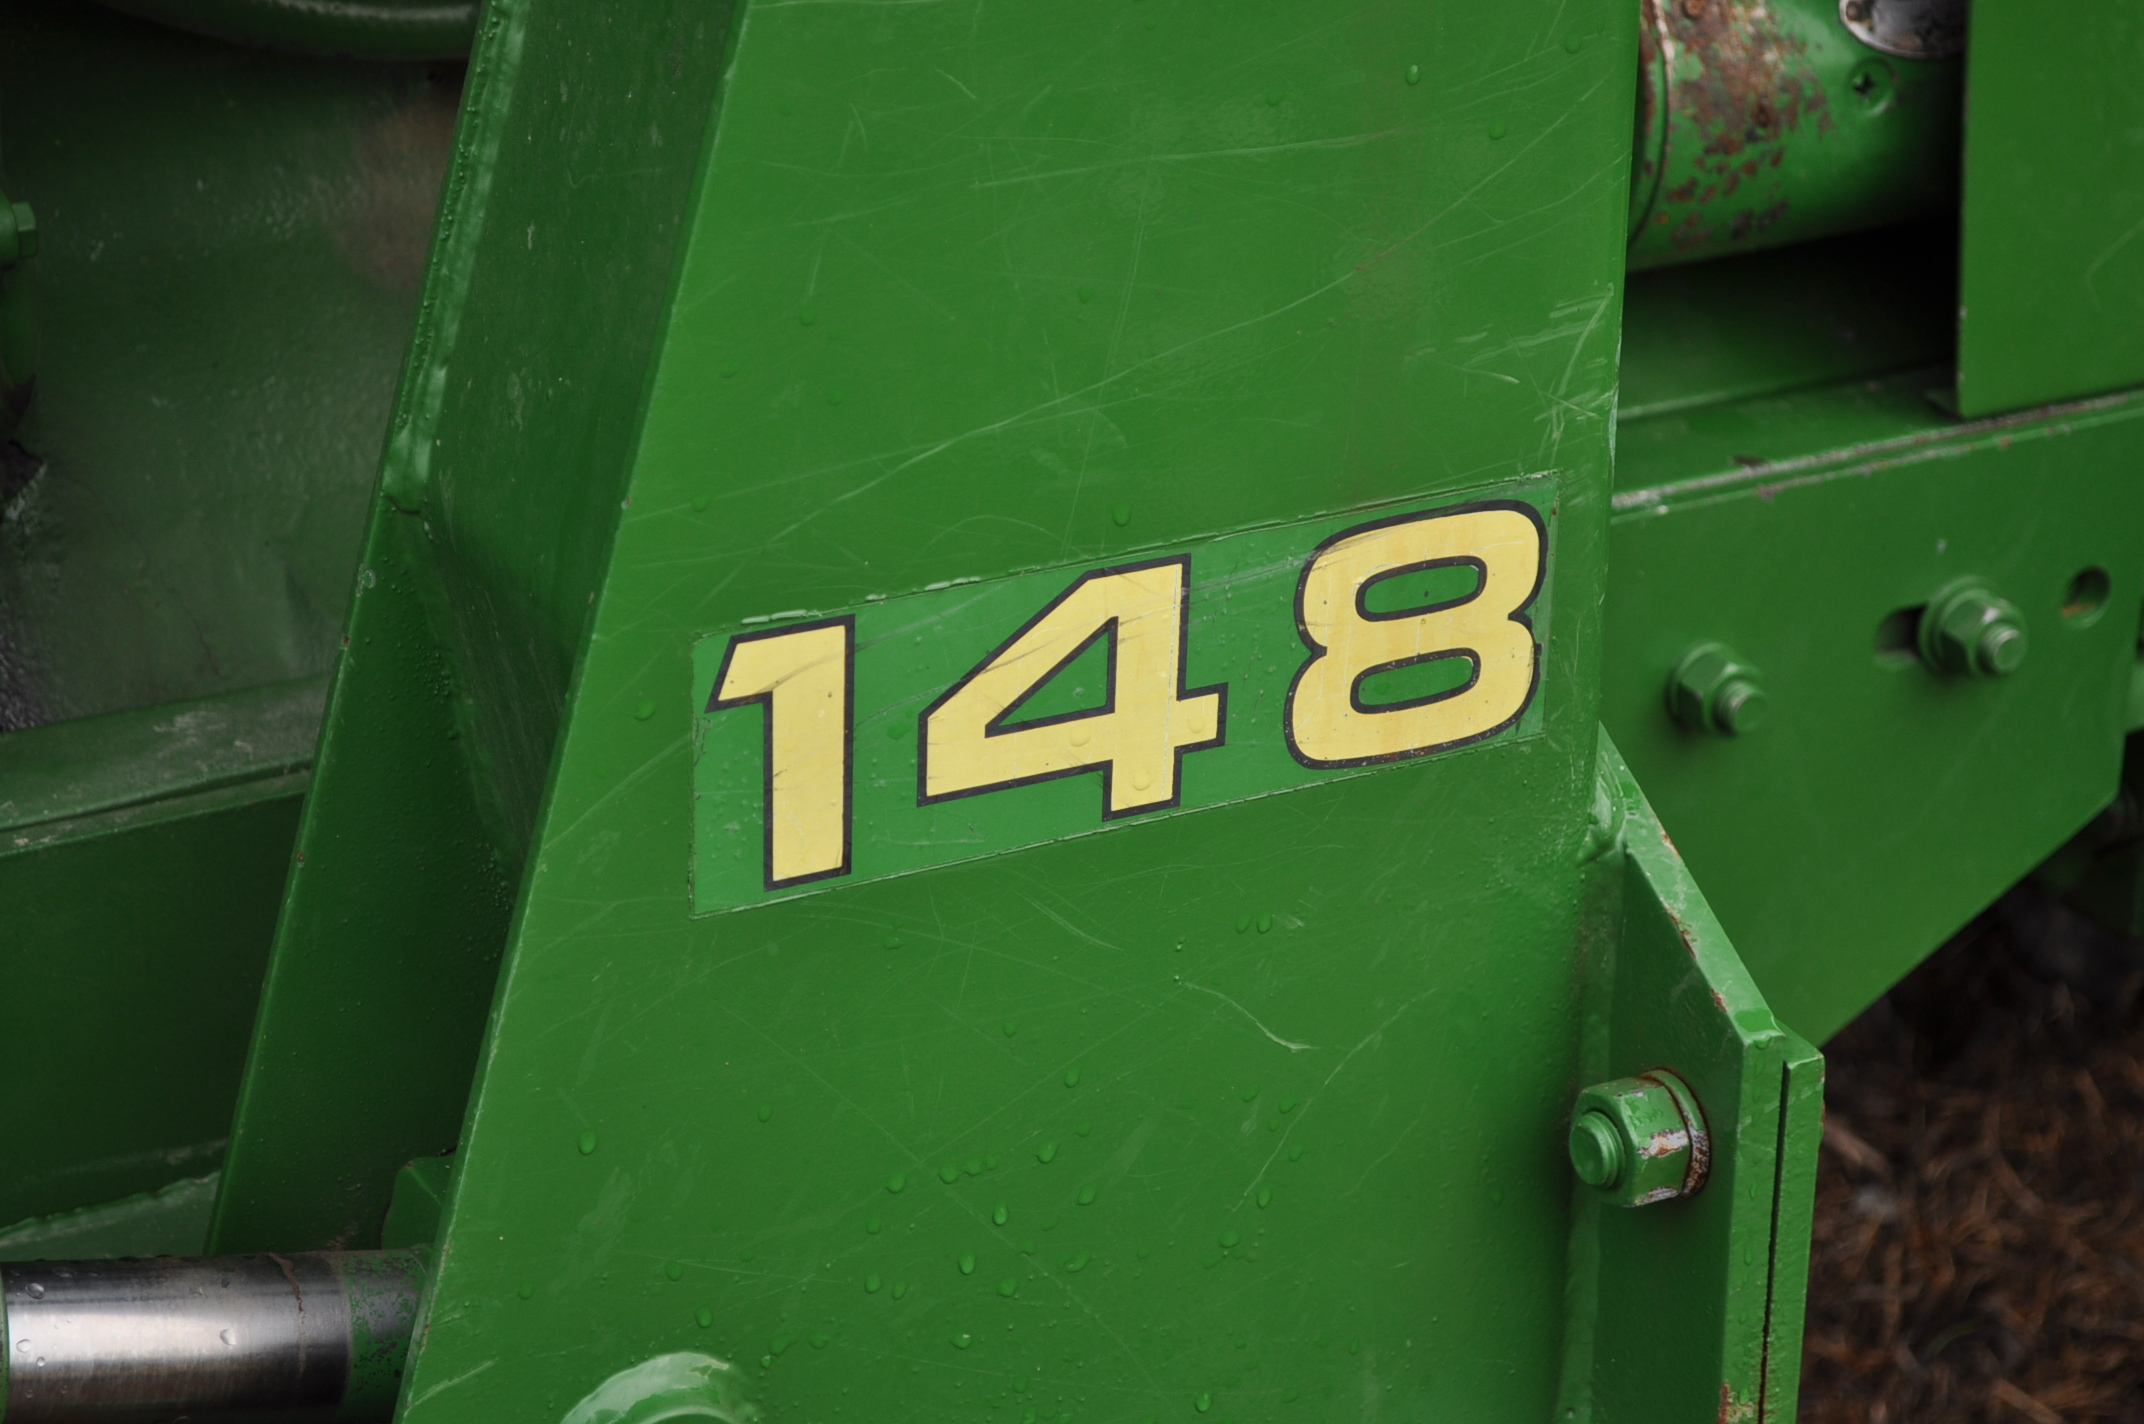 John Deere 4020 tractor, diesel, 18.4-34 tires w/ clamp on dual rims, 11L-15 front, ROPS w/ - Image 21 of 22